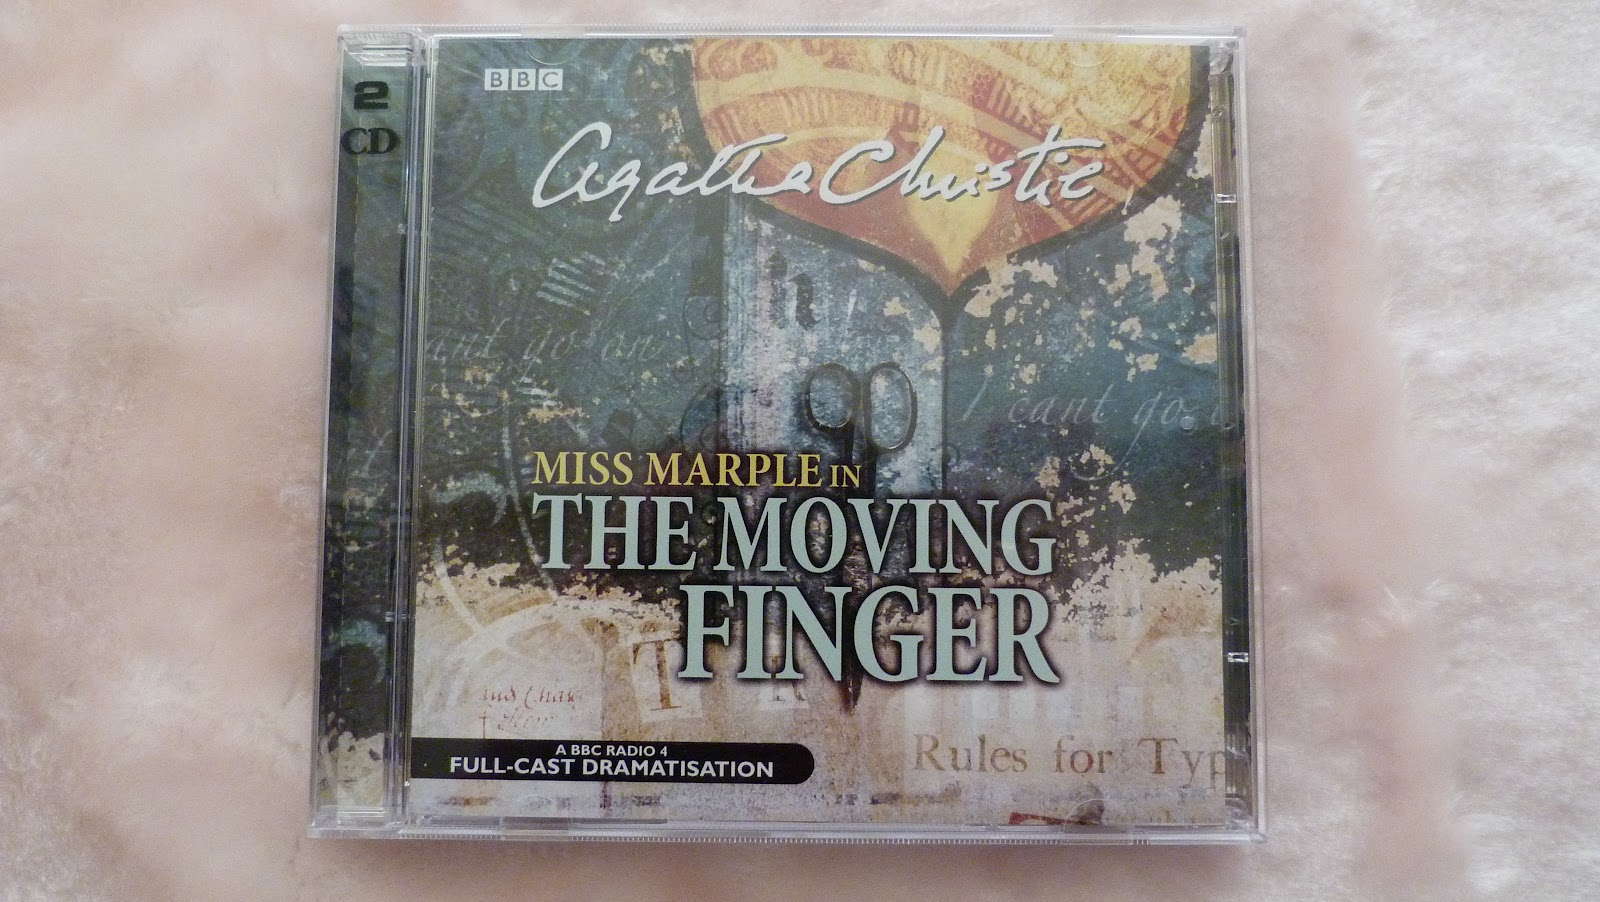 the moving finger by agatha christie essay The murder at the vicarage' is where agatha christie first introduces us to miss marple the narrator of the story is the reverend leonard clement, vicar of st mary mead and he describes miss marple as a 'white-haired old lady with a gentle, and appealing manner'he also calls her 'dangerous' it is the vicar who discovers the first body, that of colonel protheroe, in the vicarage study.